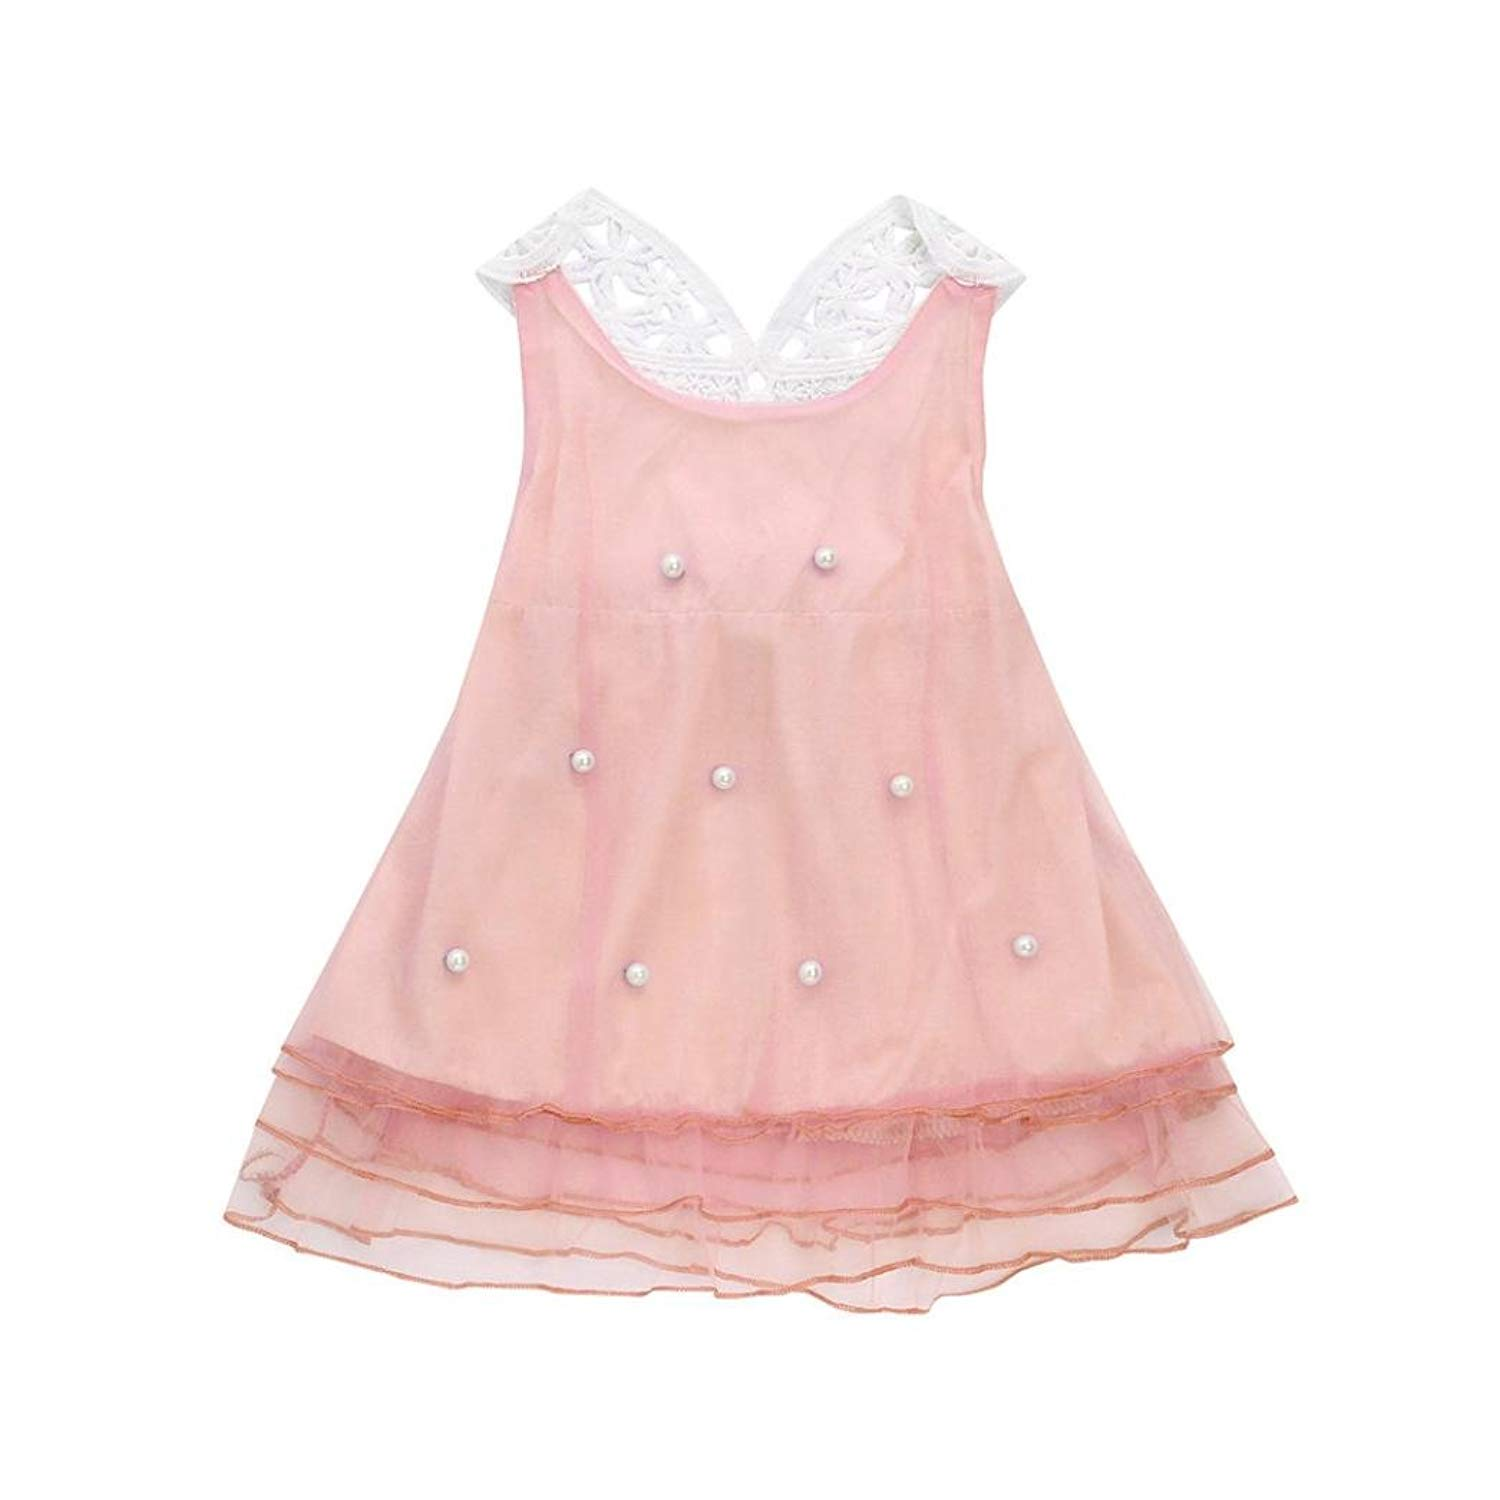 5d1dacc5f Get Quotations · Elevin(TM) Toddle Tutu Skirt Kid Baby Girl Sleeveless Bead  Summer Lace Dresses Sunsuit